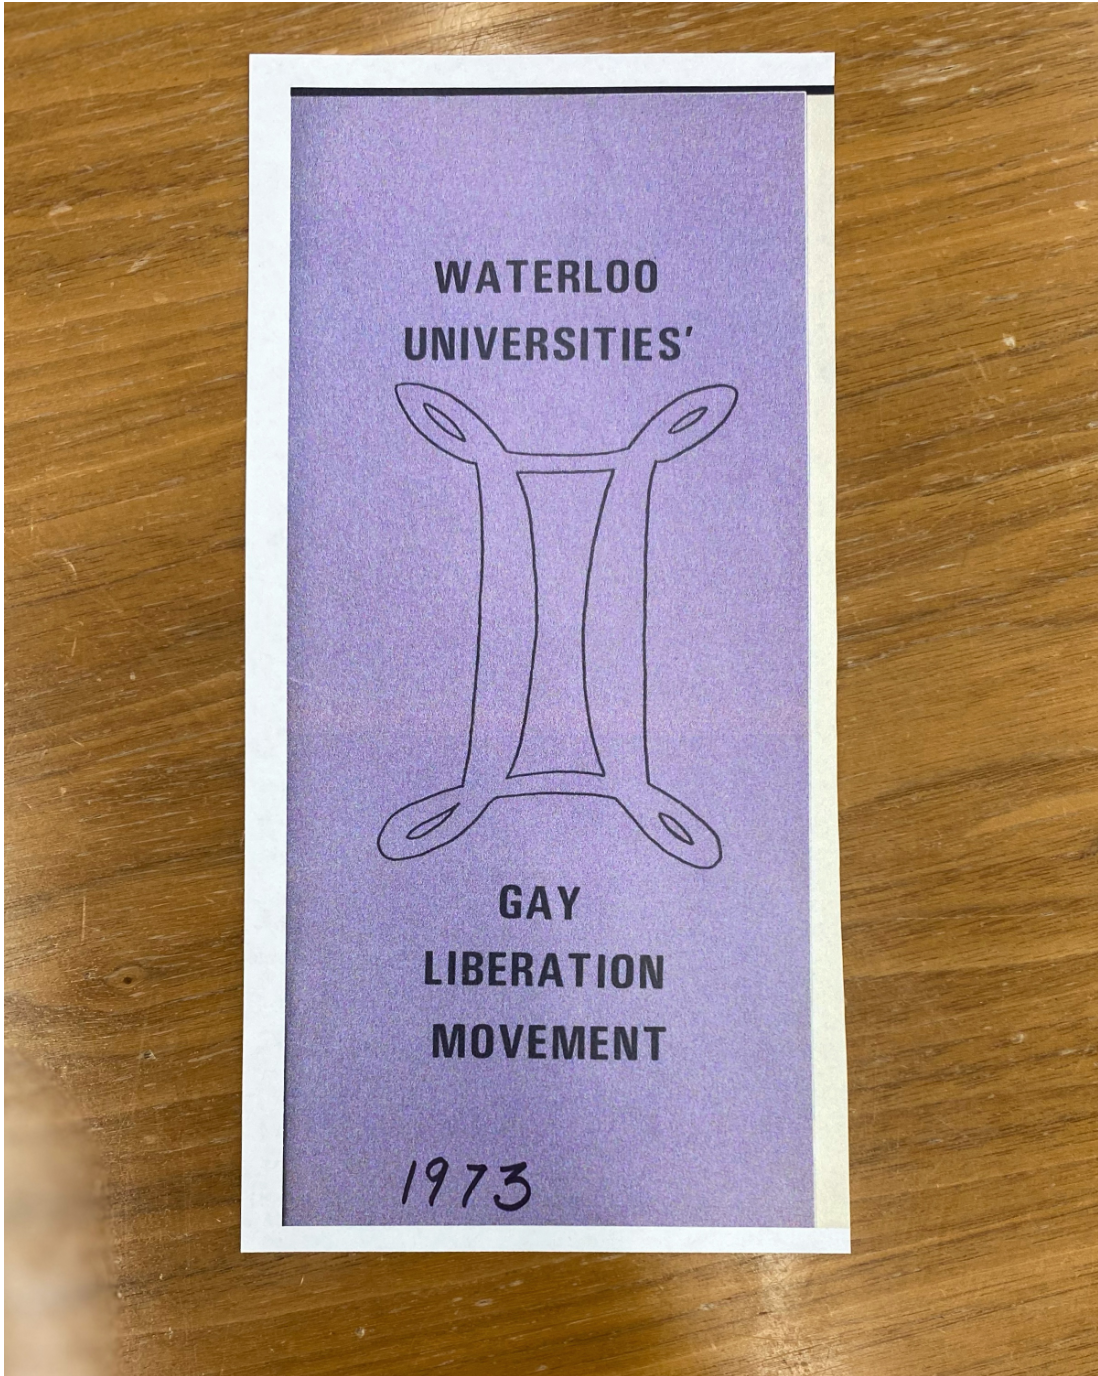 Photo of cover of a pamphlet produced by the Waterloo Universities' Gay Liberation Movement in 1973